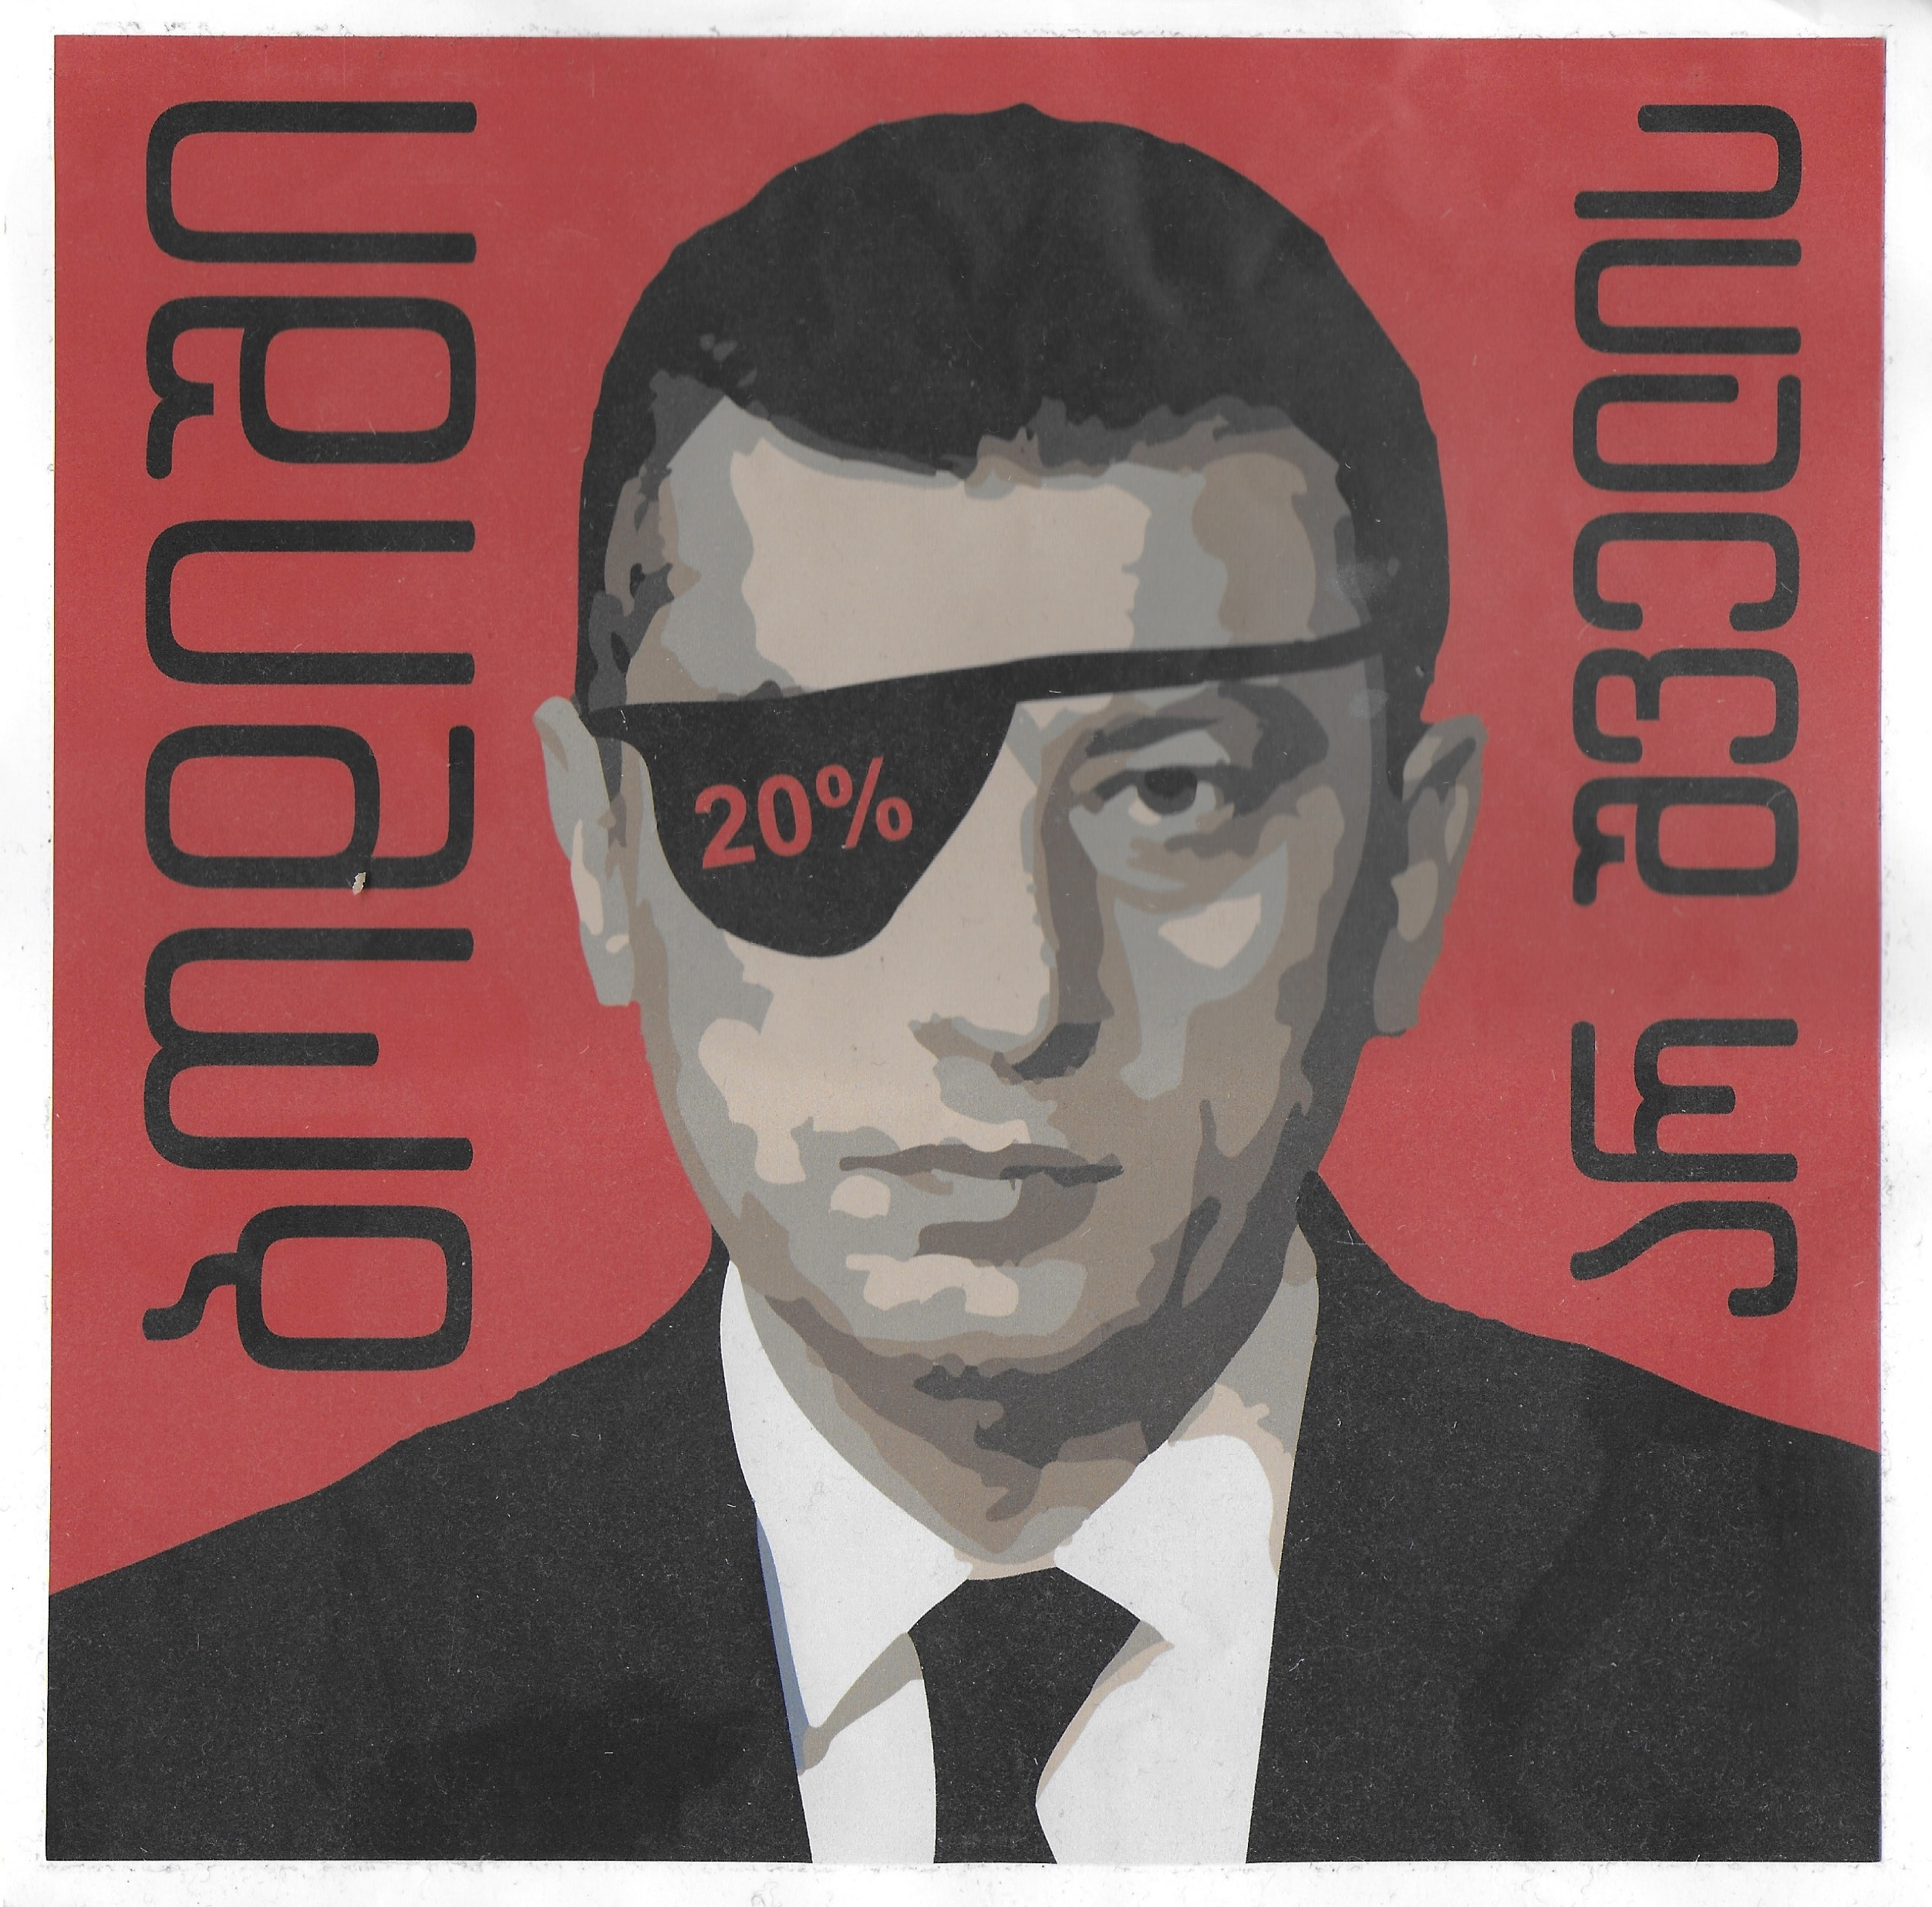 """Poster of Giorgi Gakharia from Tbilisi Protests reading """"Sorry is not enough"""""""